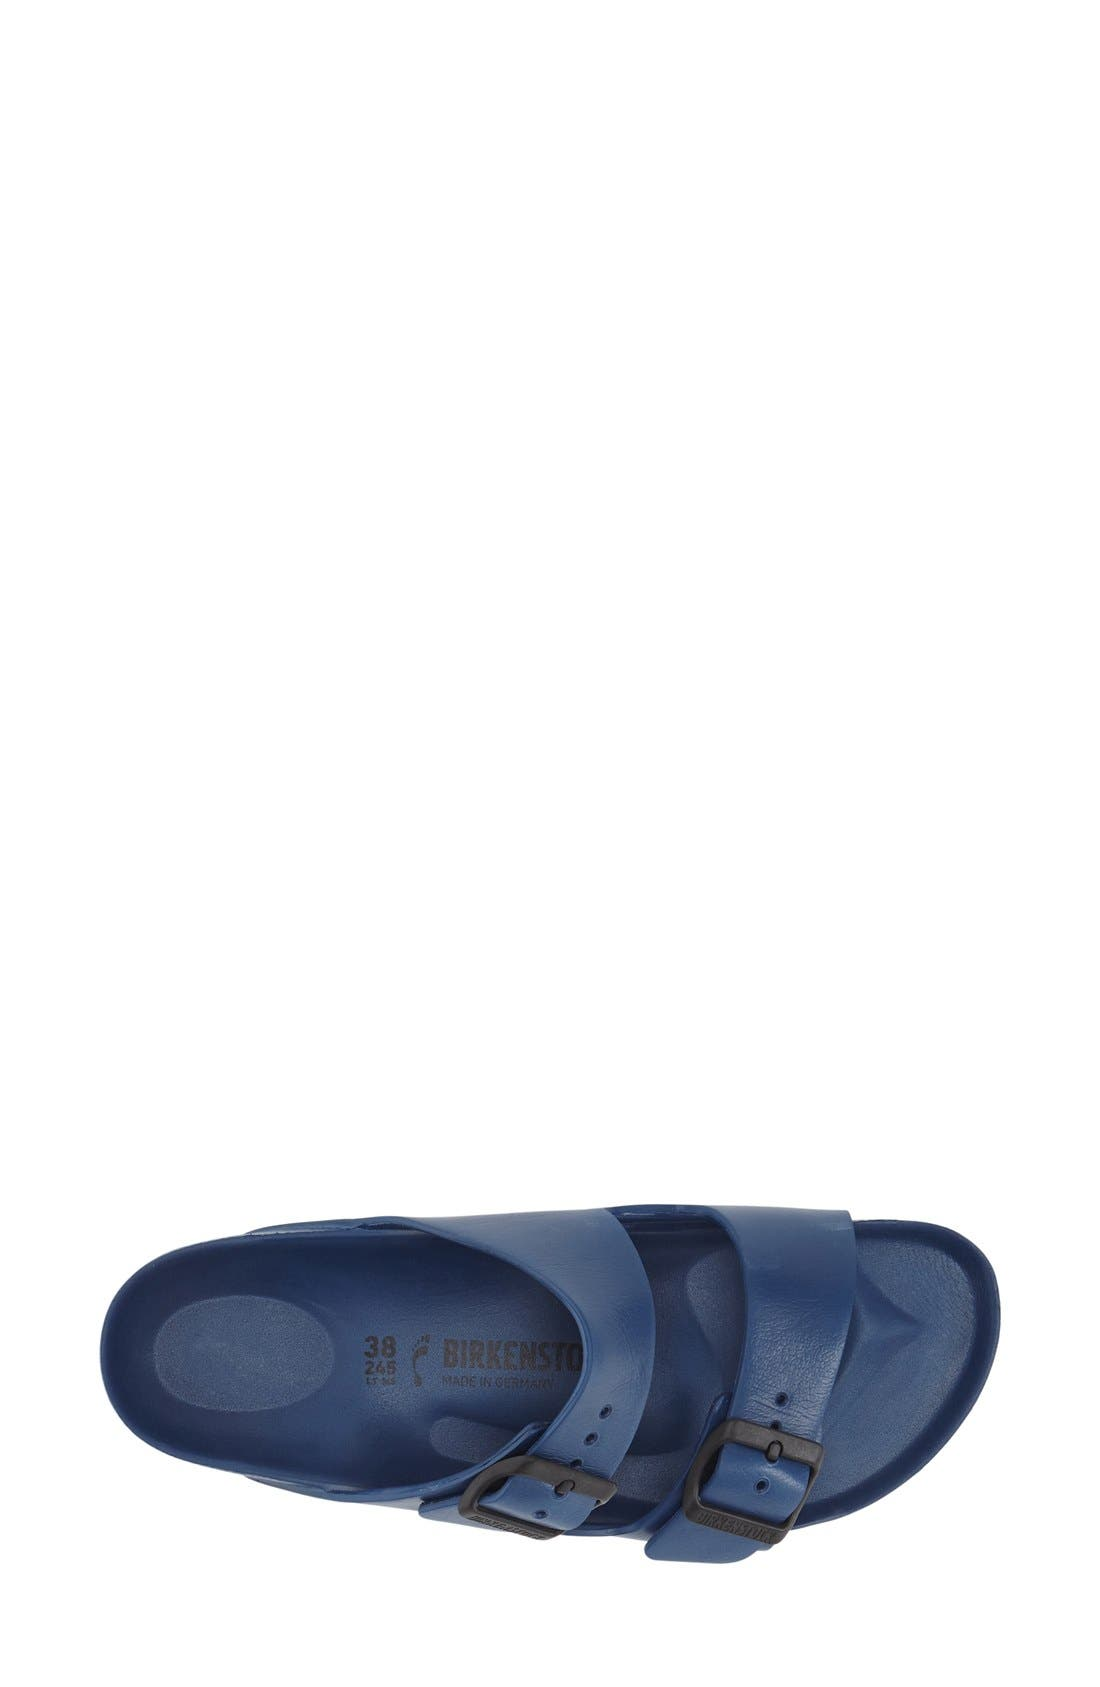 Essentials - Arizona Slide Sandal,                             Alternate thumbnail 6, color,                             NAVY EVA